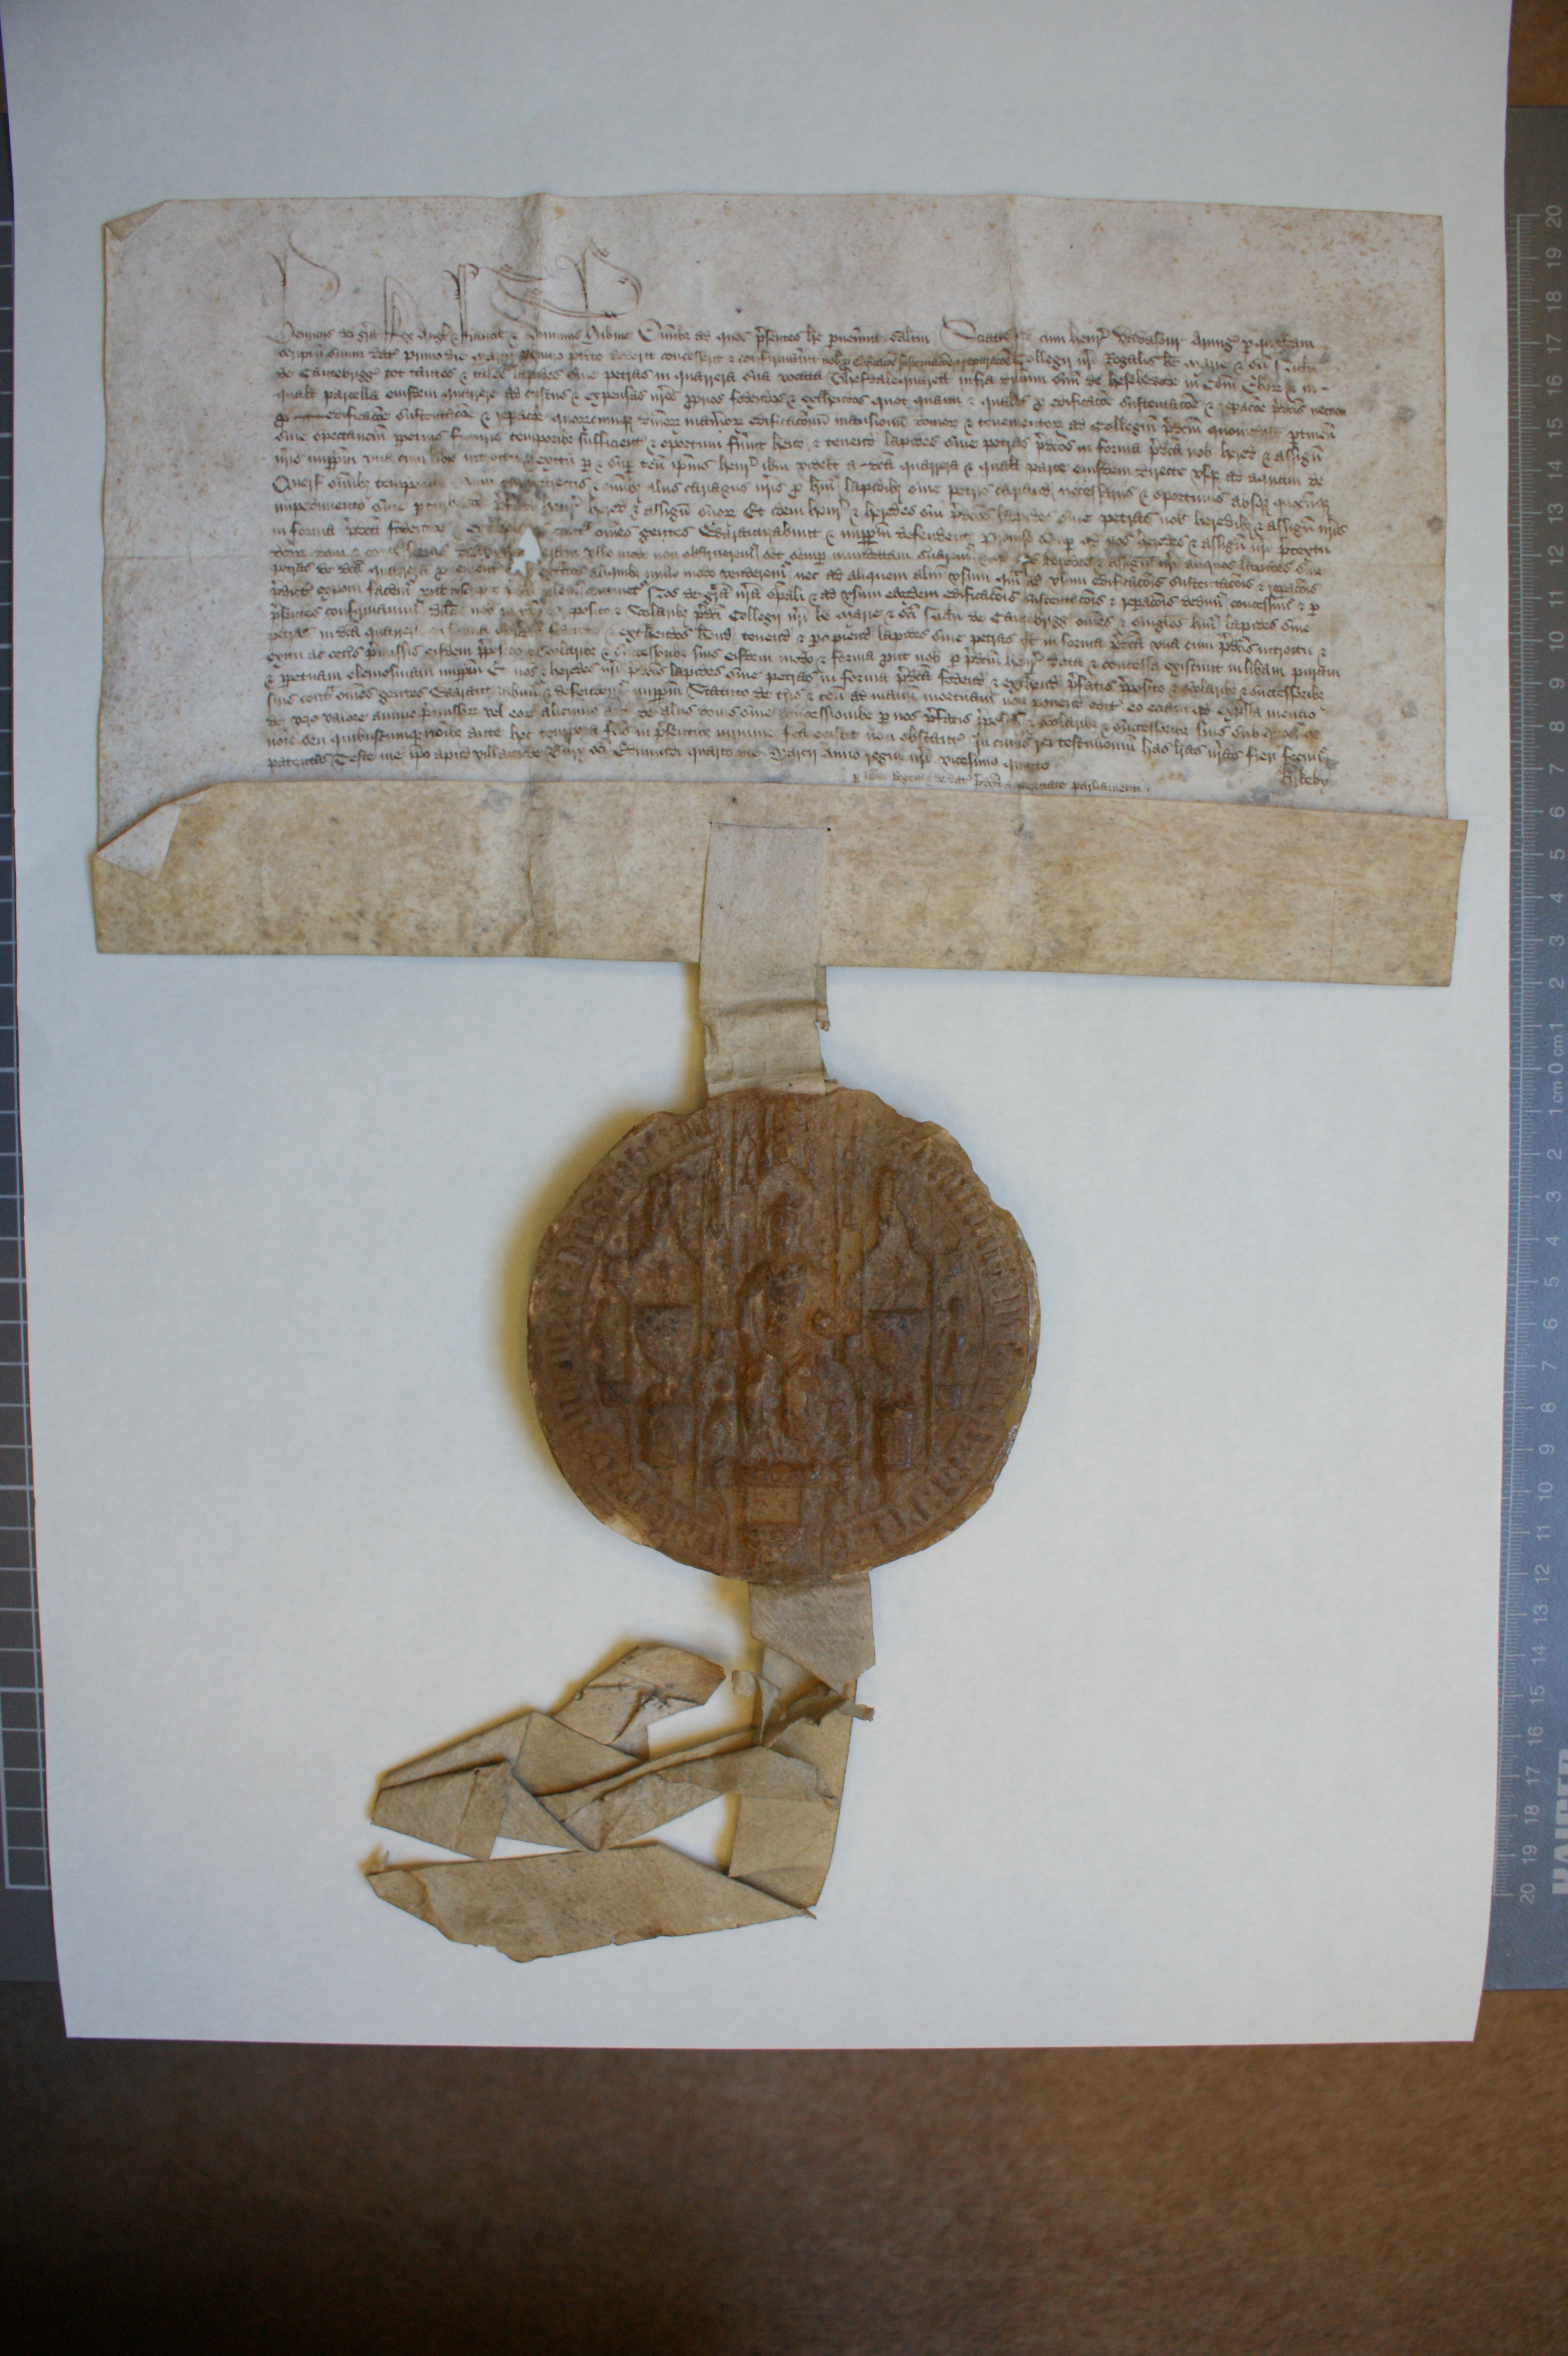 Royal letters patent granting 'Thesdale' quarry at Haslewood, Yorkshire, with right of carriage to river Wharf, granted to Henry VI by Henry Vavasour, for building at King's, 4 March 1447. [KCD/4]